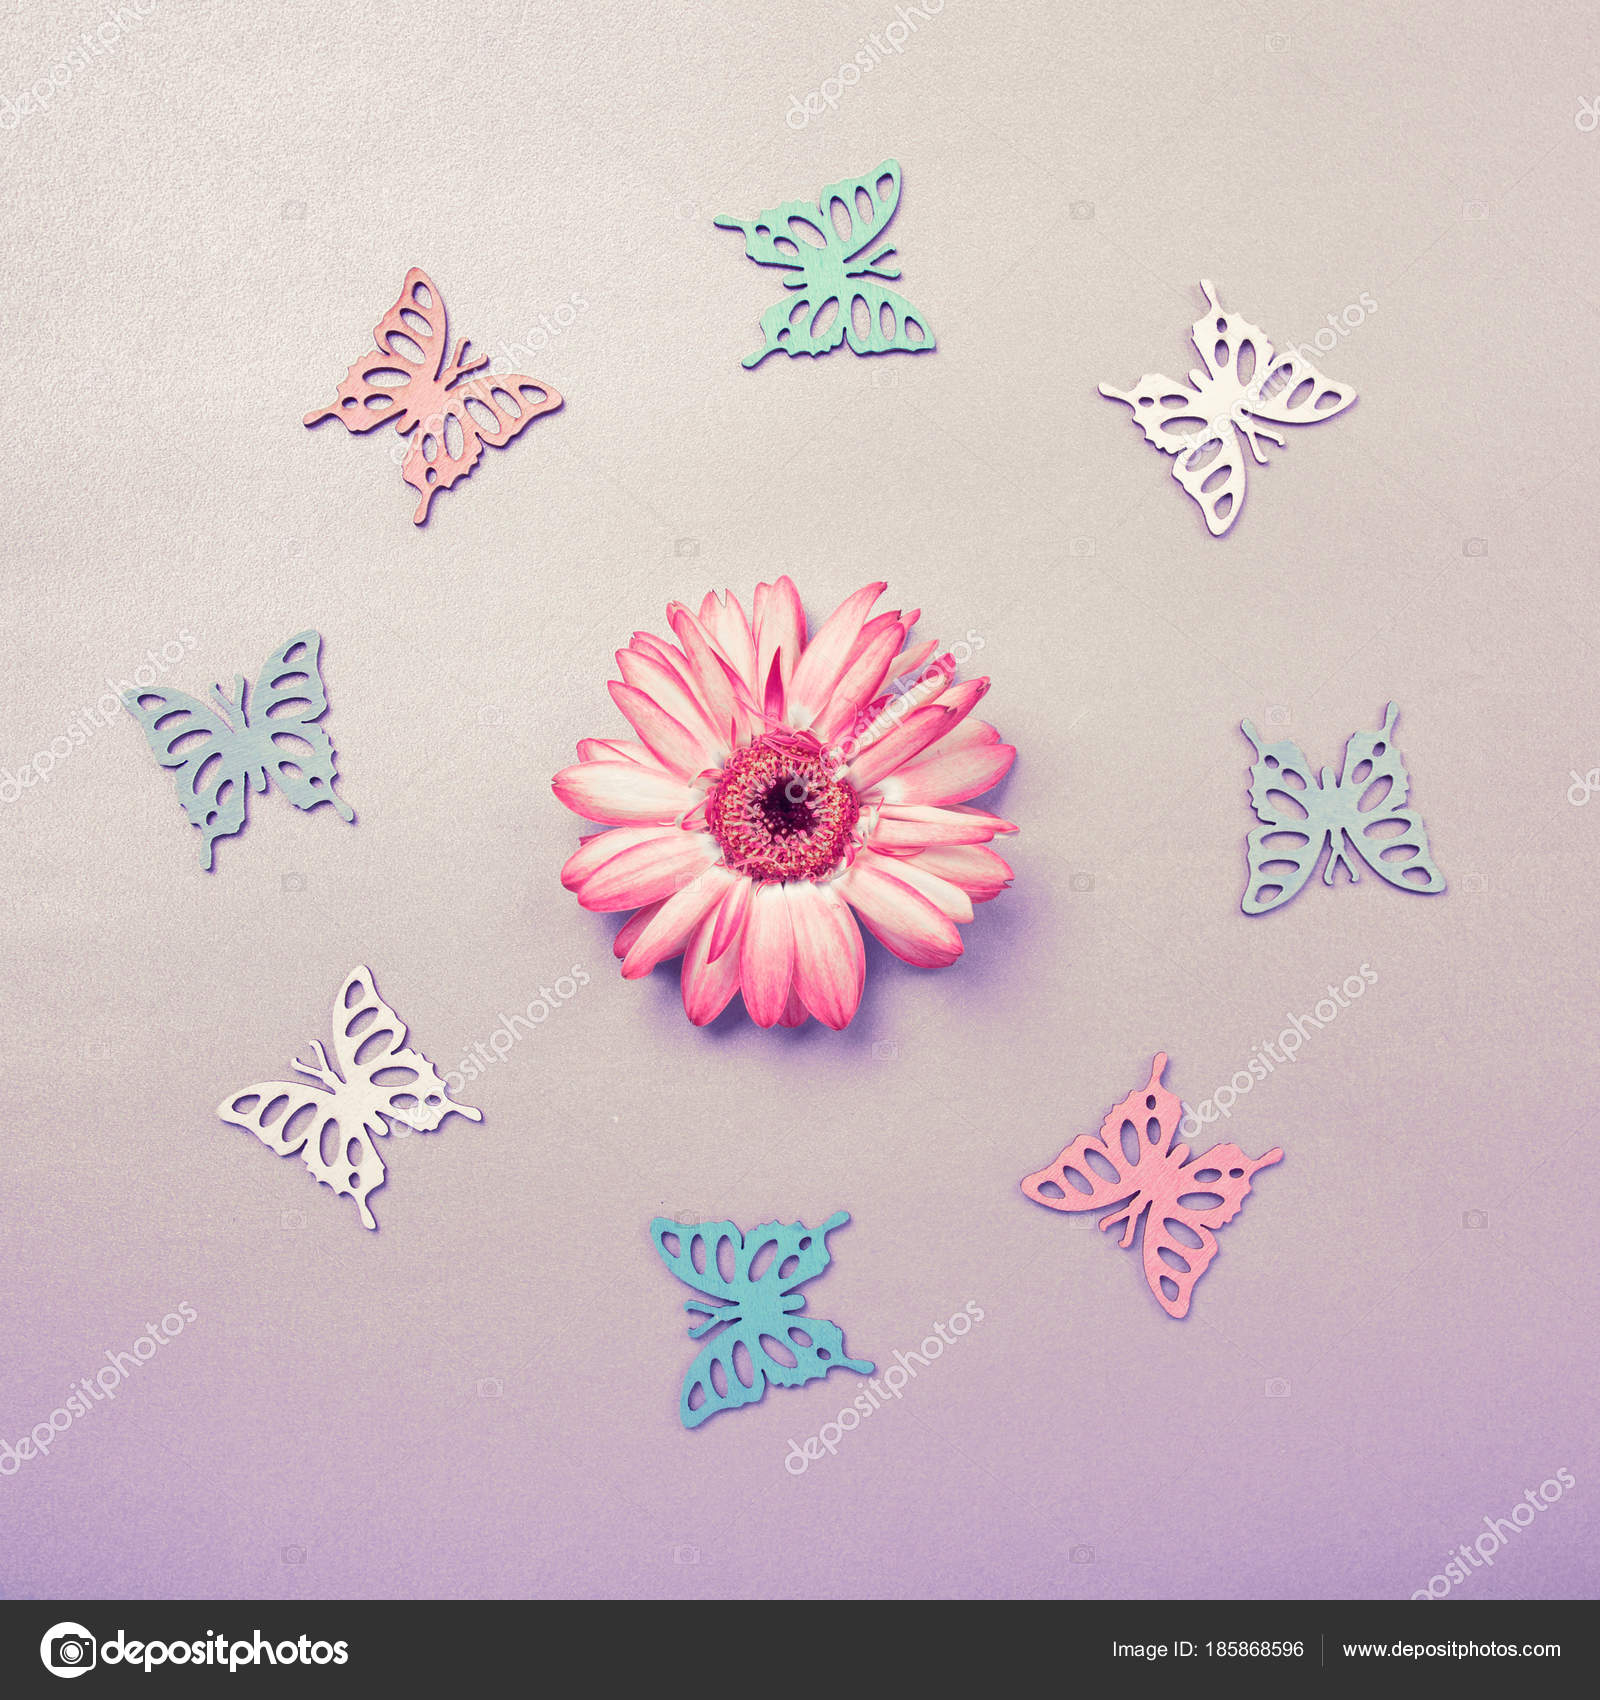 Butterfies Cutouts Arranged In Circle Around A Flower Flatlay On